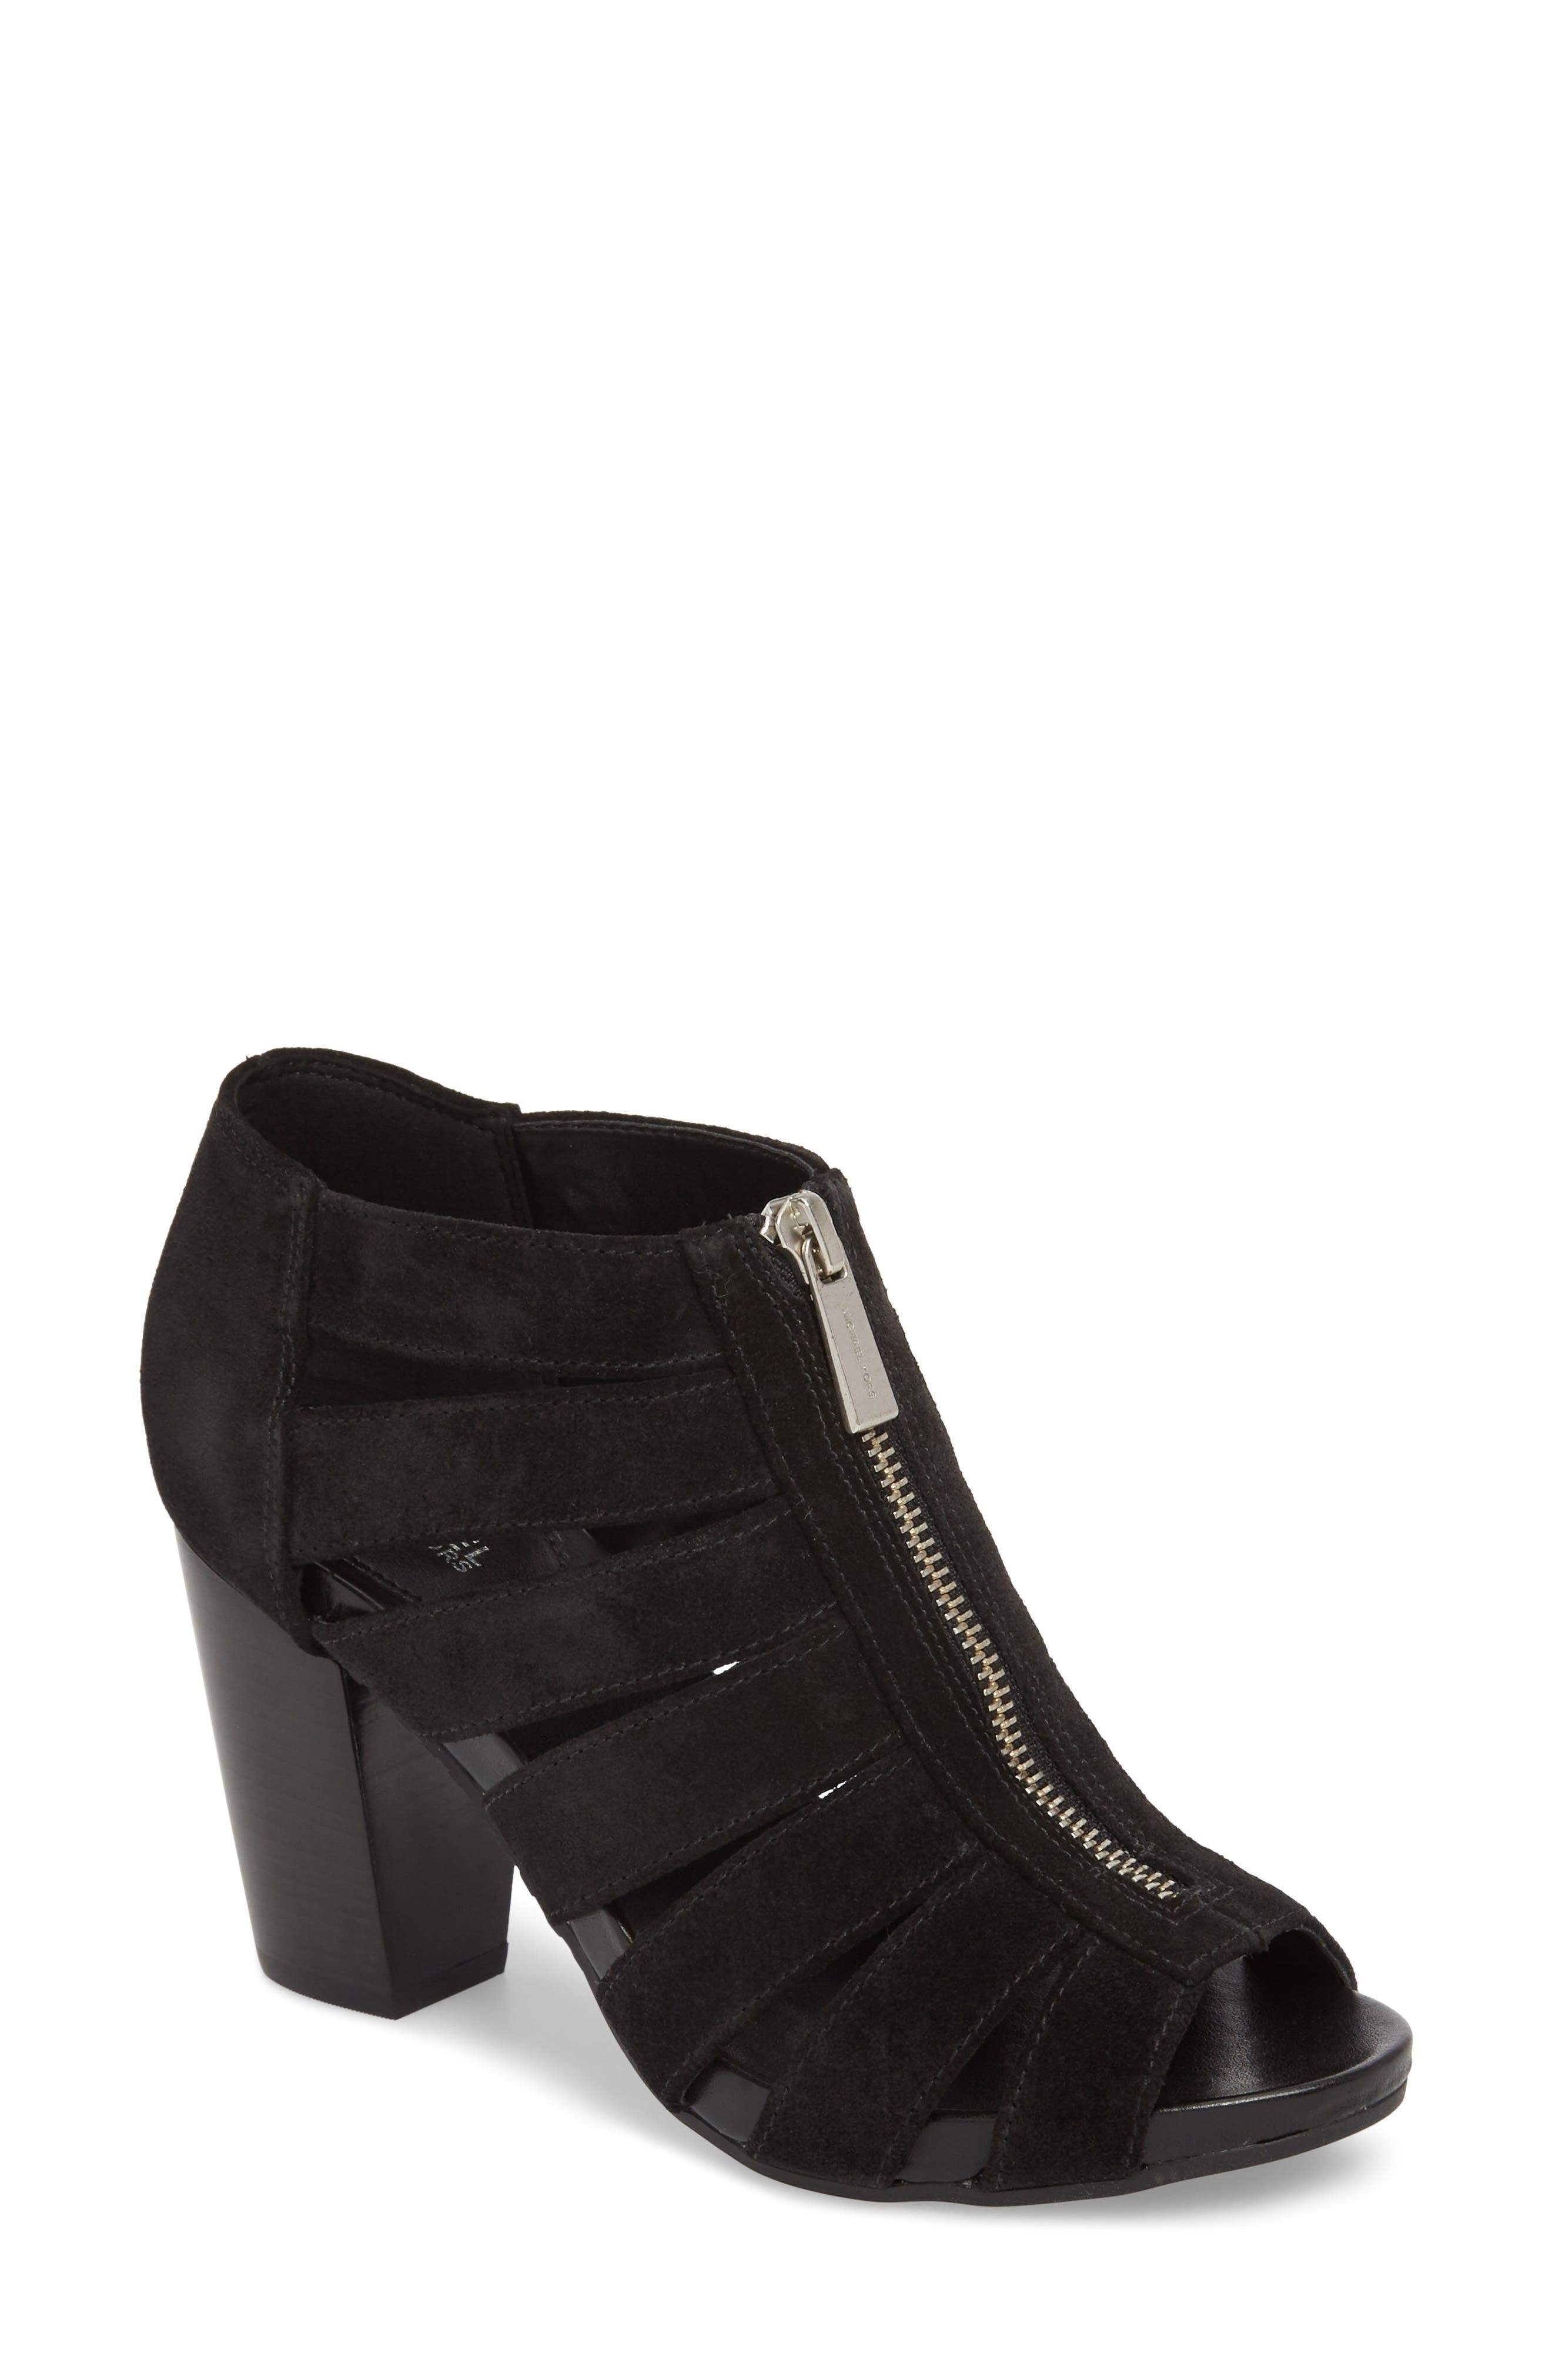 SHERRY CAGE BOOTIE